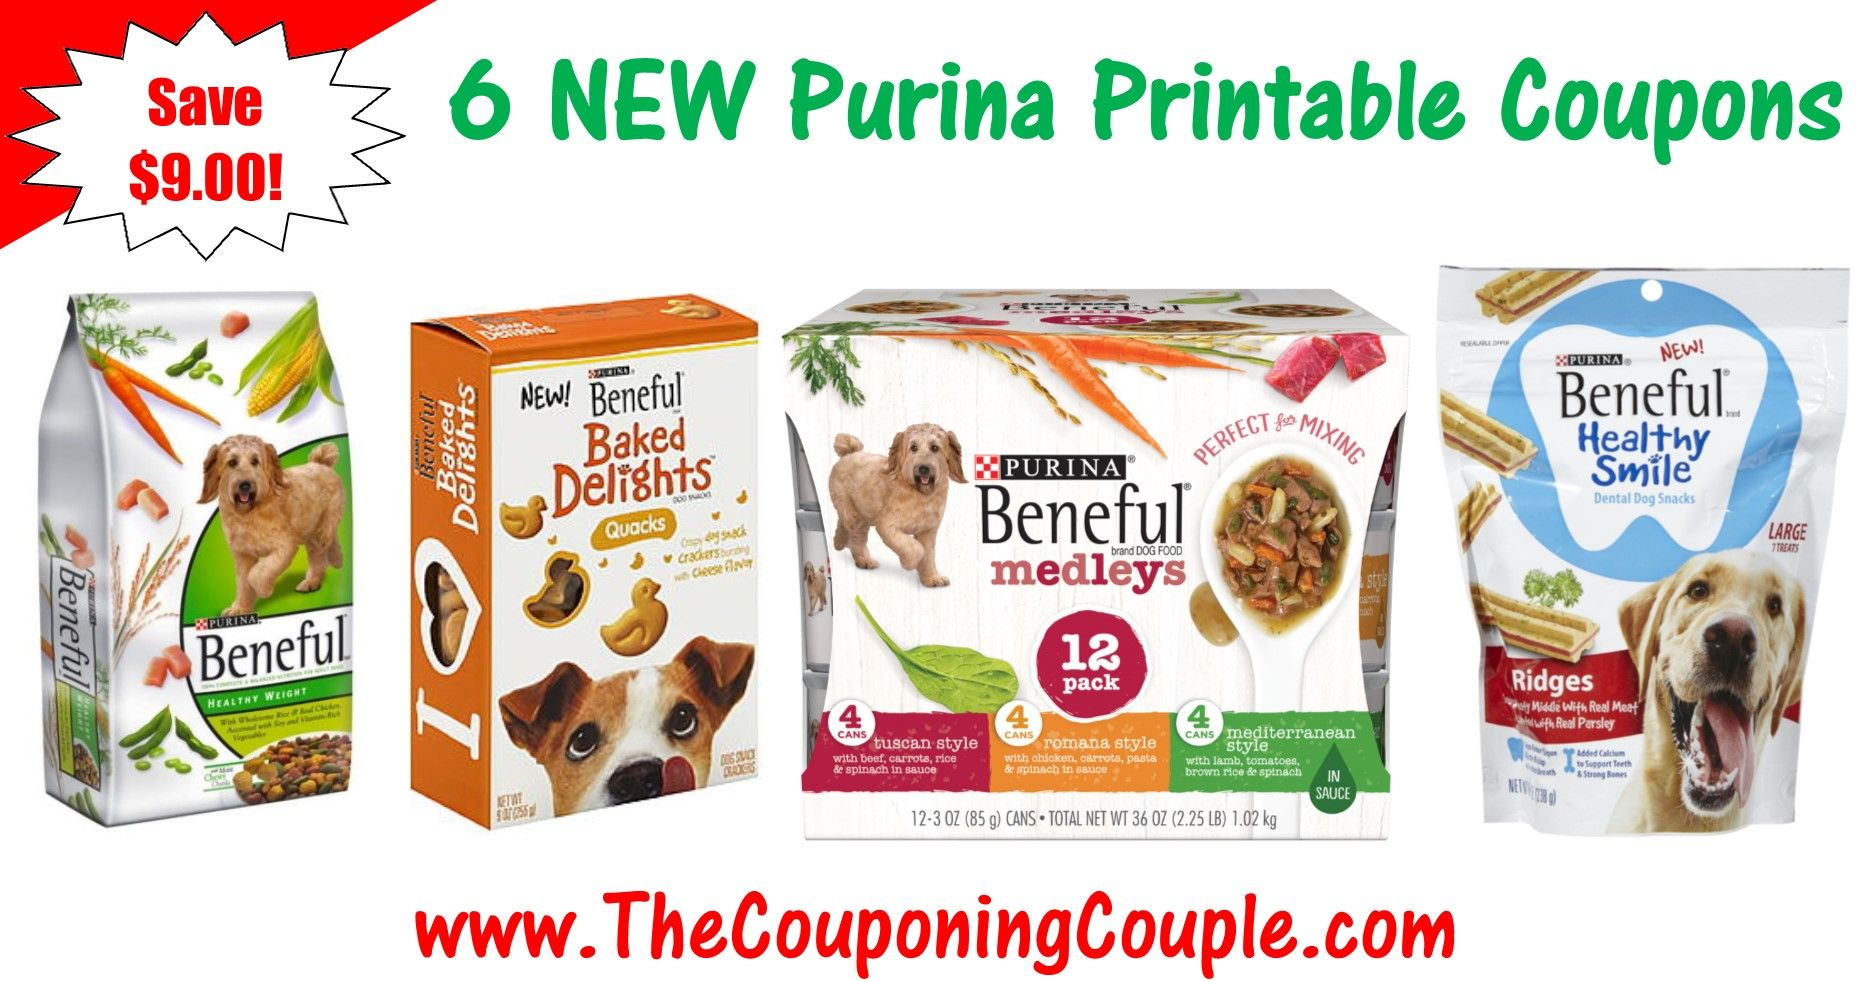 2 NEW Purina Printable Coupons SAVE 3.10 on Cat Chow